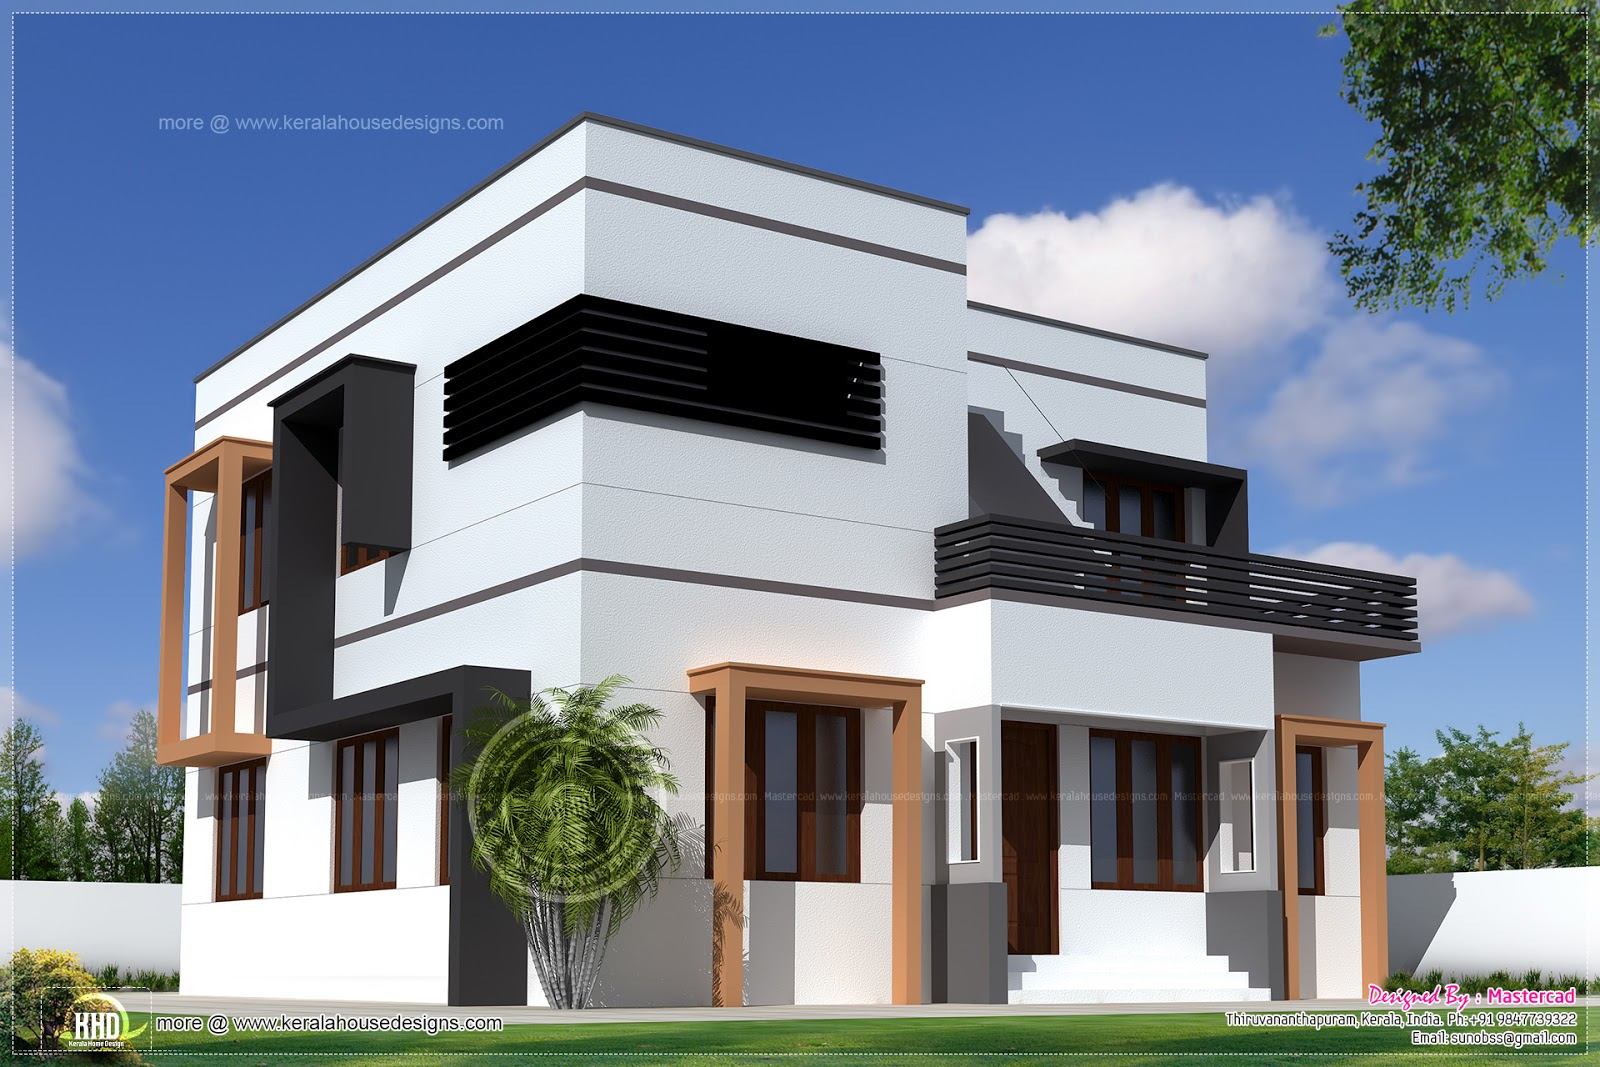 1627 square feet modern villa exterior house design plans for Modern house plans for 1600 sq ft